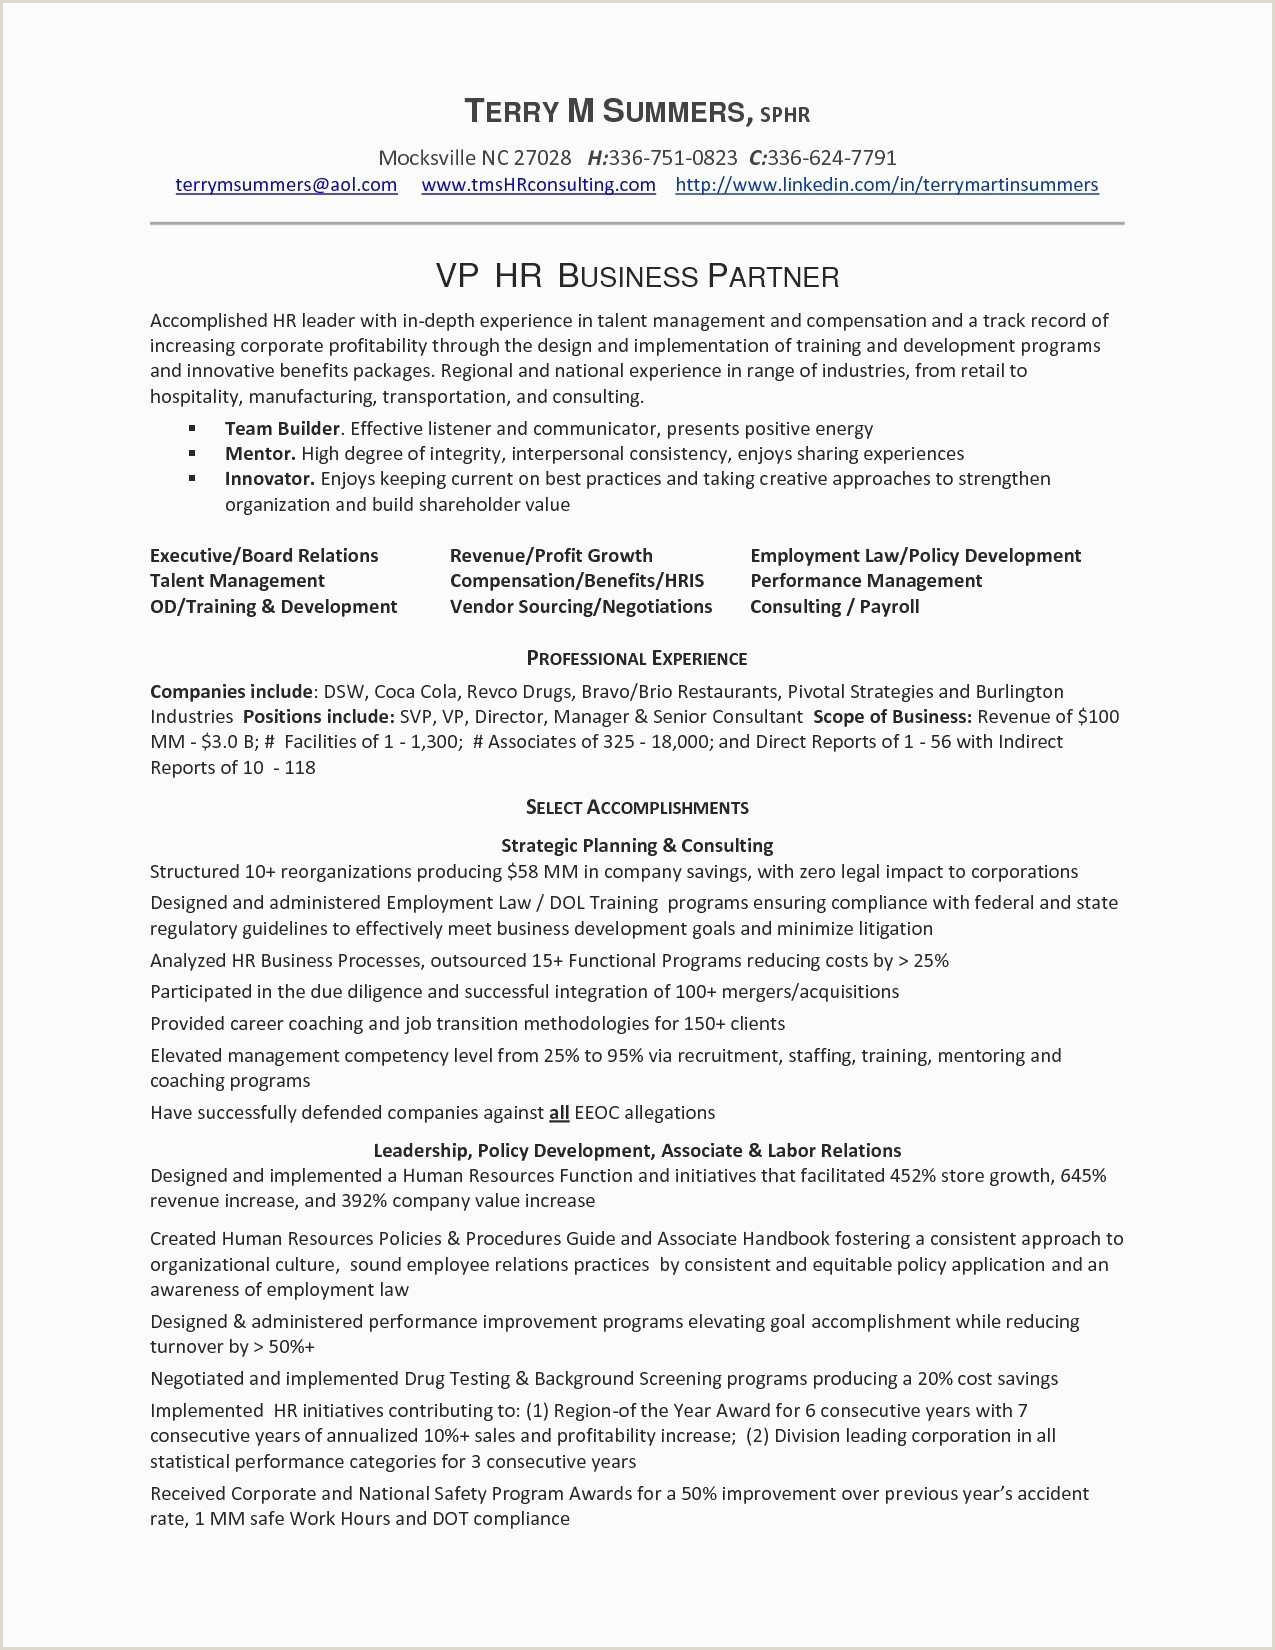 Residential Counselor Resume Samples Residential Counselor Cover Letter Examples Cover Letter